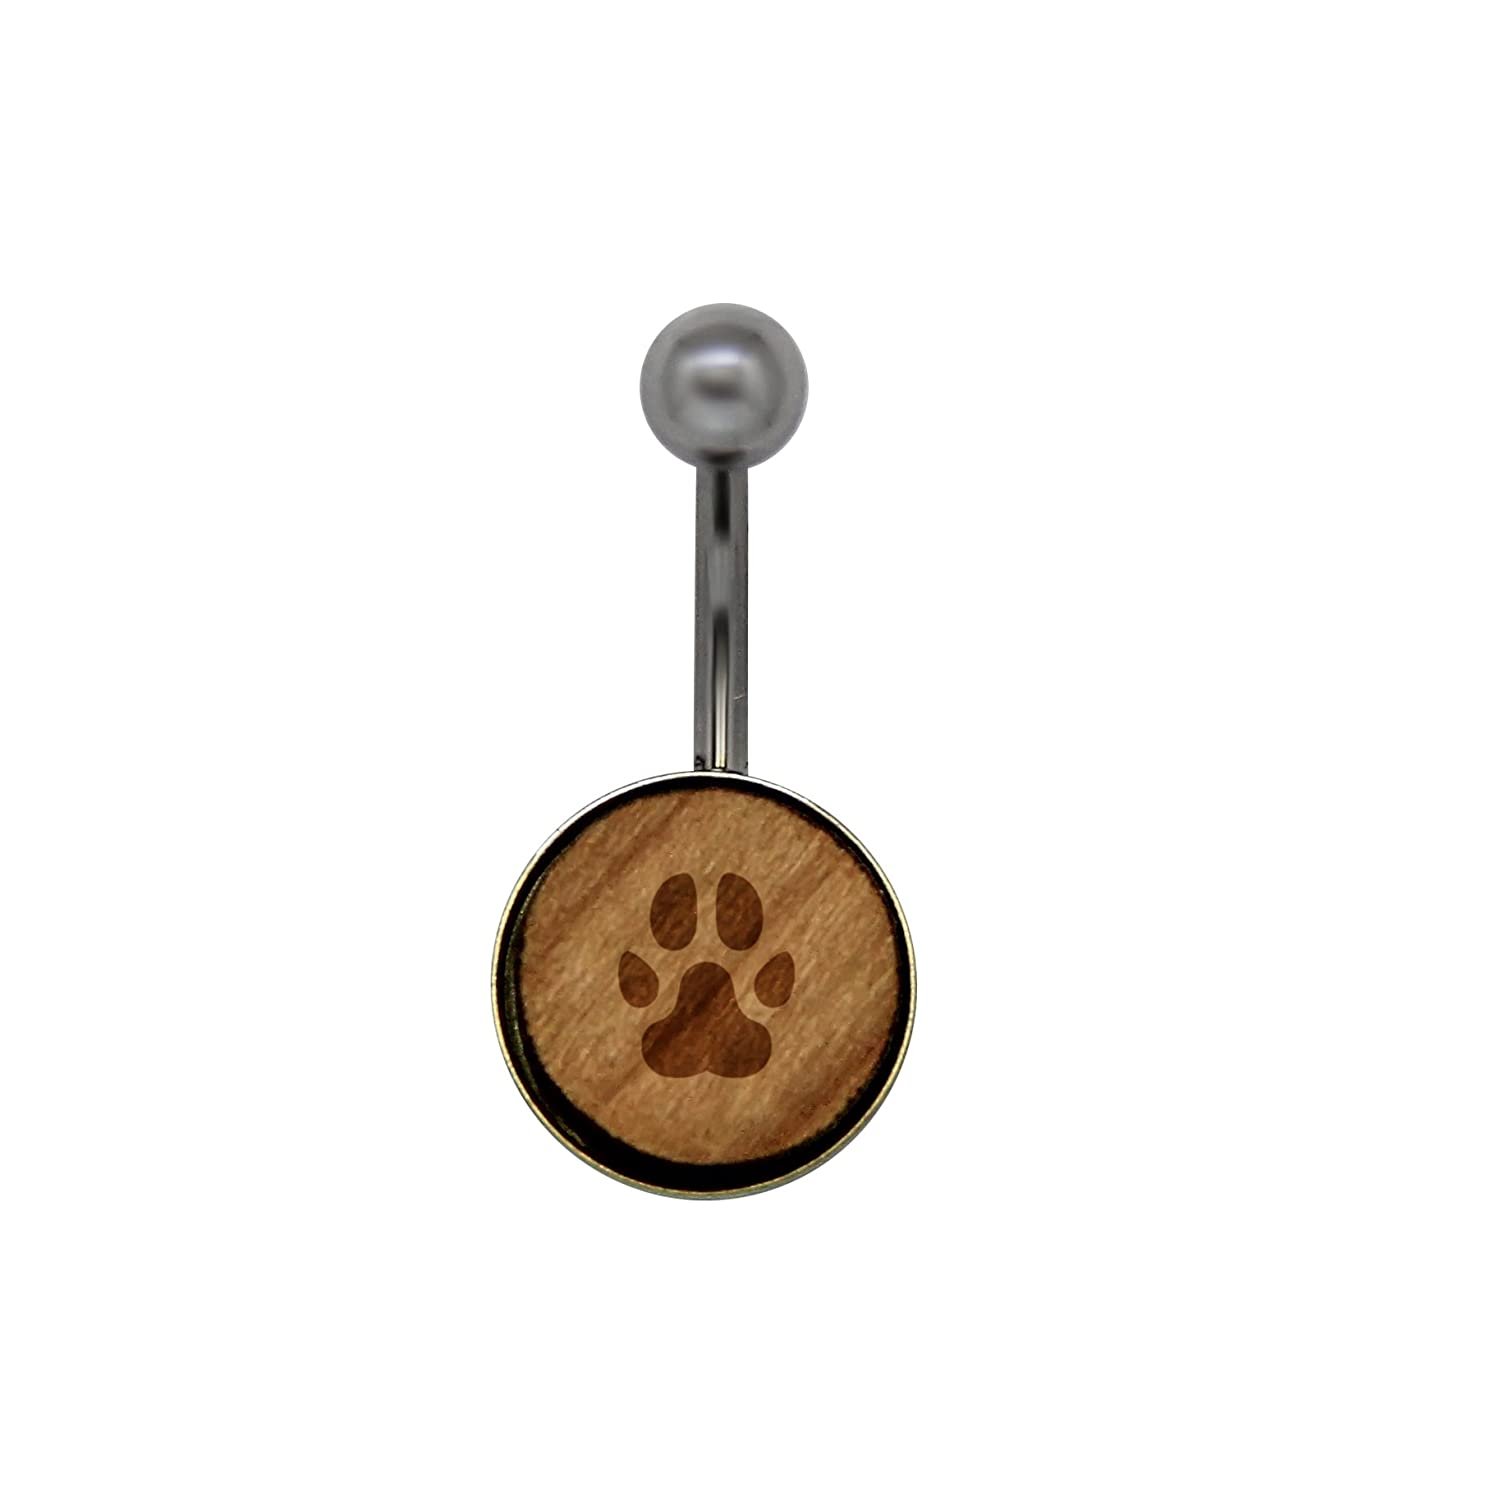 Paw Print Surgical Stainless Steel Belly Button Rings Size 14 Gauge Wooden Navel Ring Rustic Wood Navel Ring with Laser Engraved Design